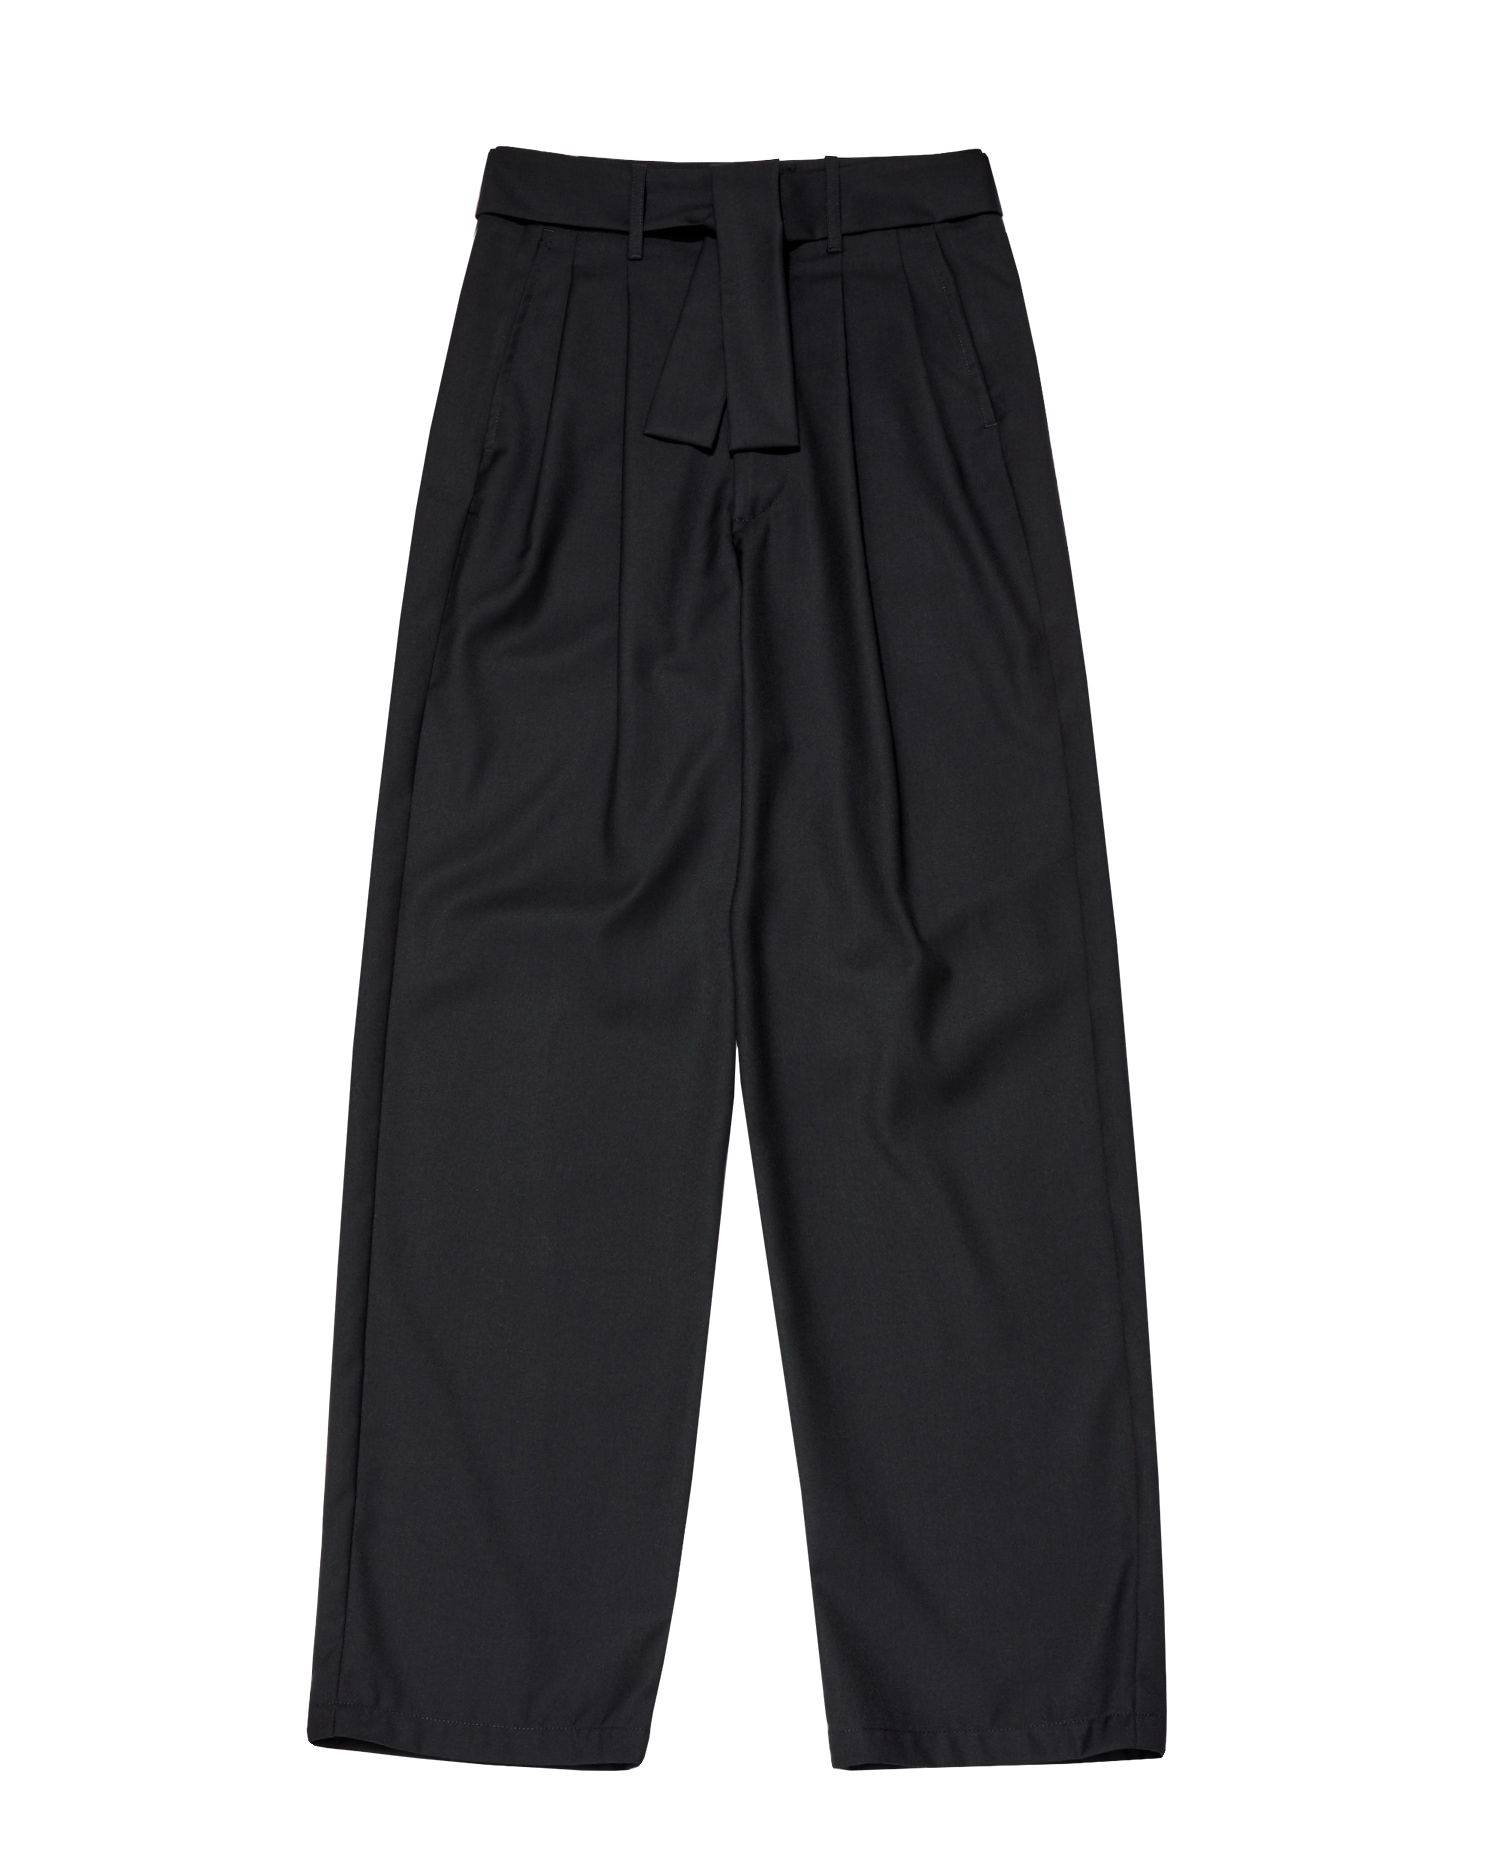 shop-designer-pant-black.jpg